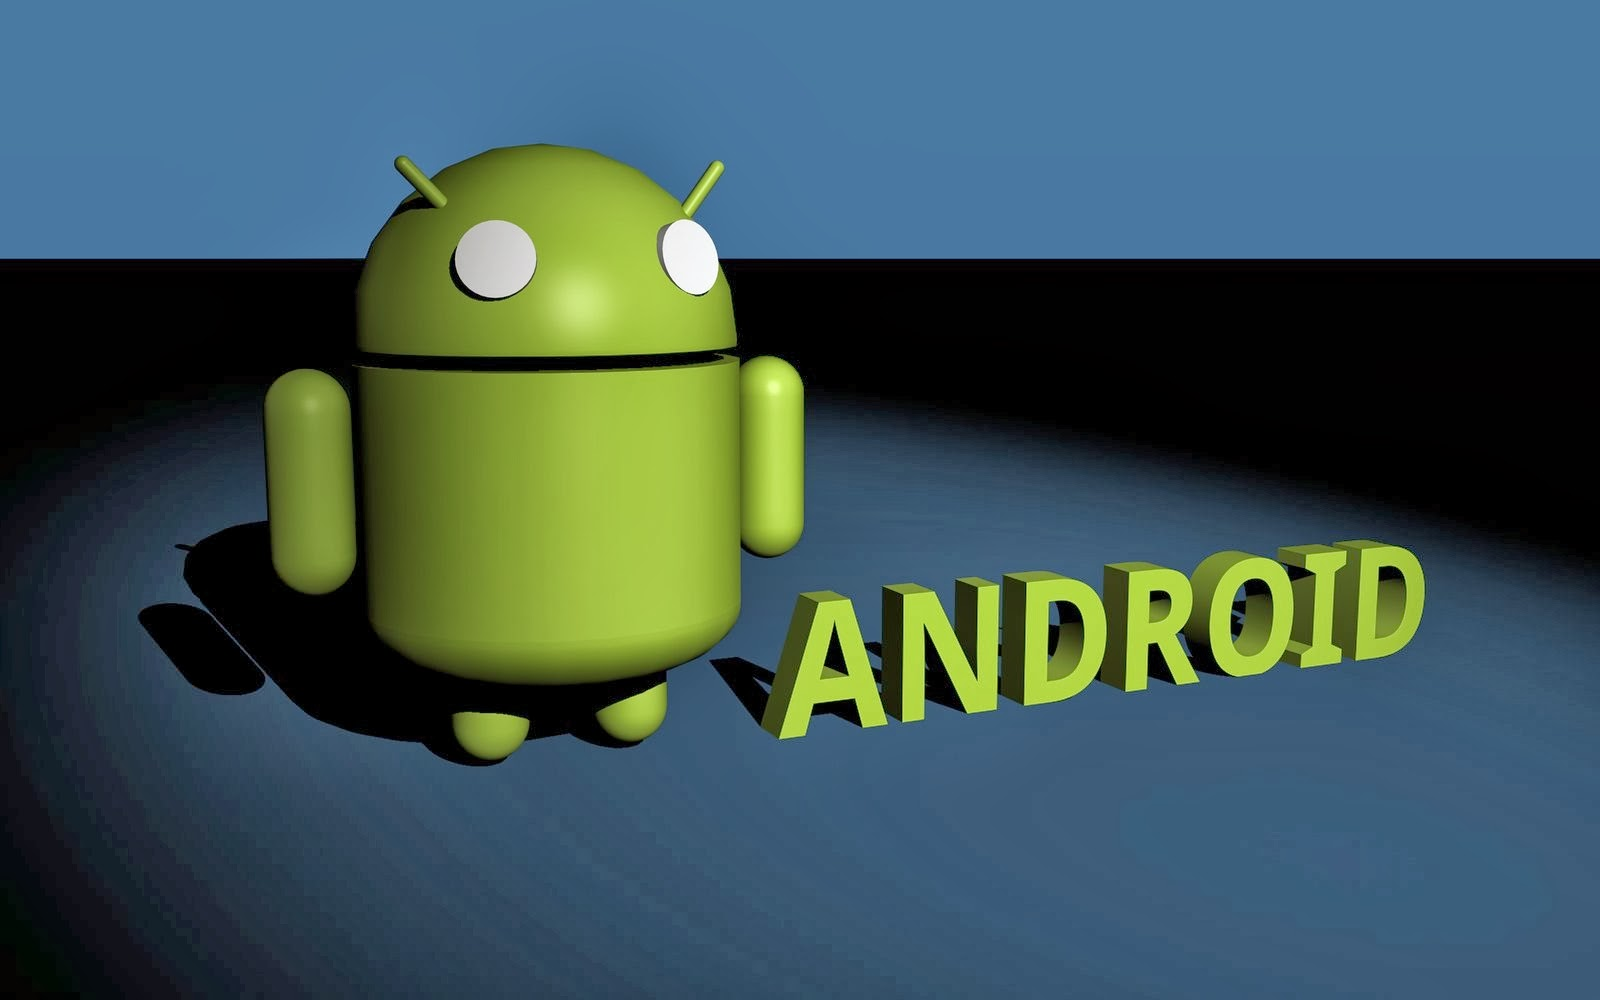 Wallpapers For Android: Open Source For Geeks: Android Operating System Overview